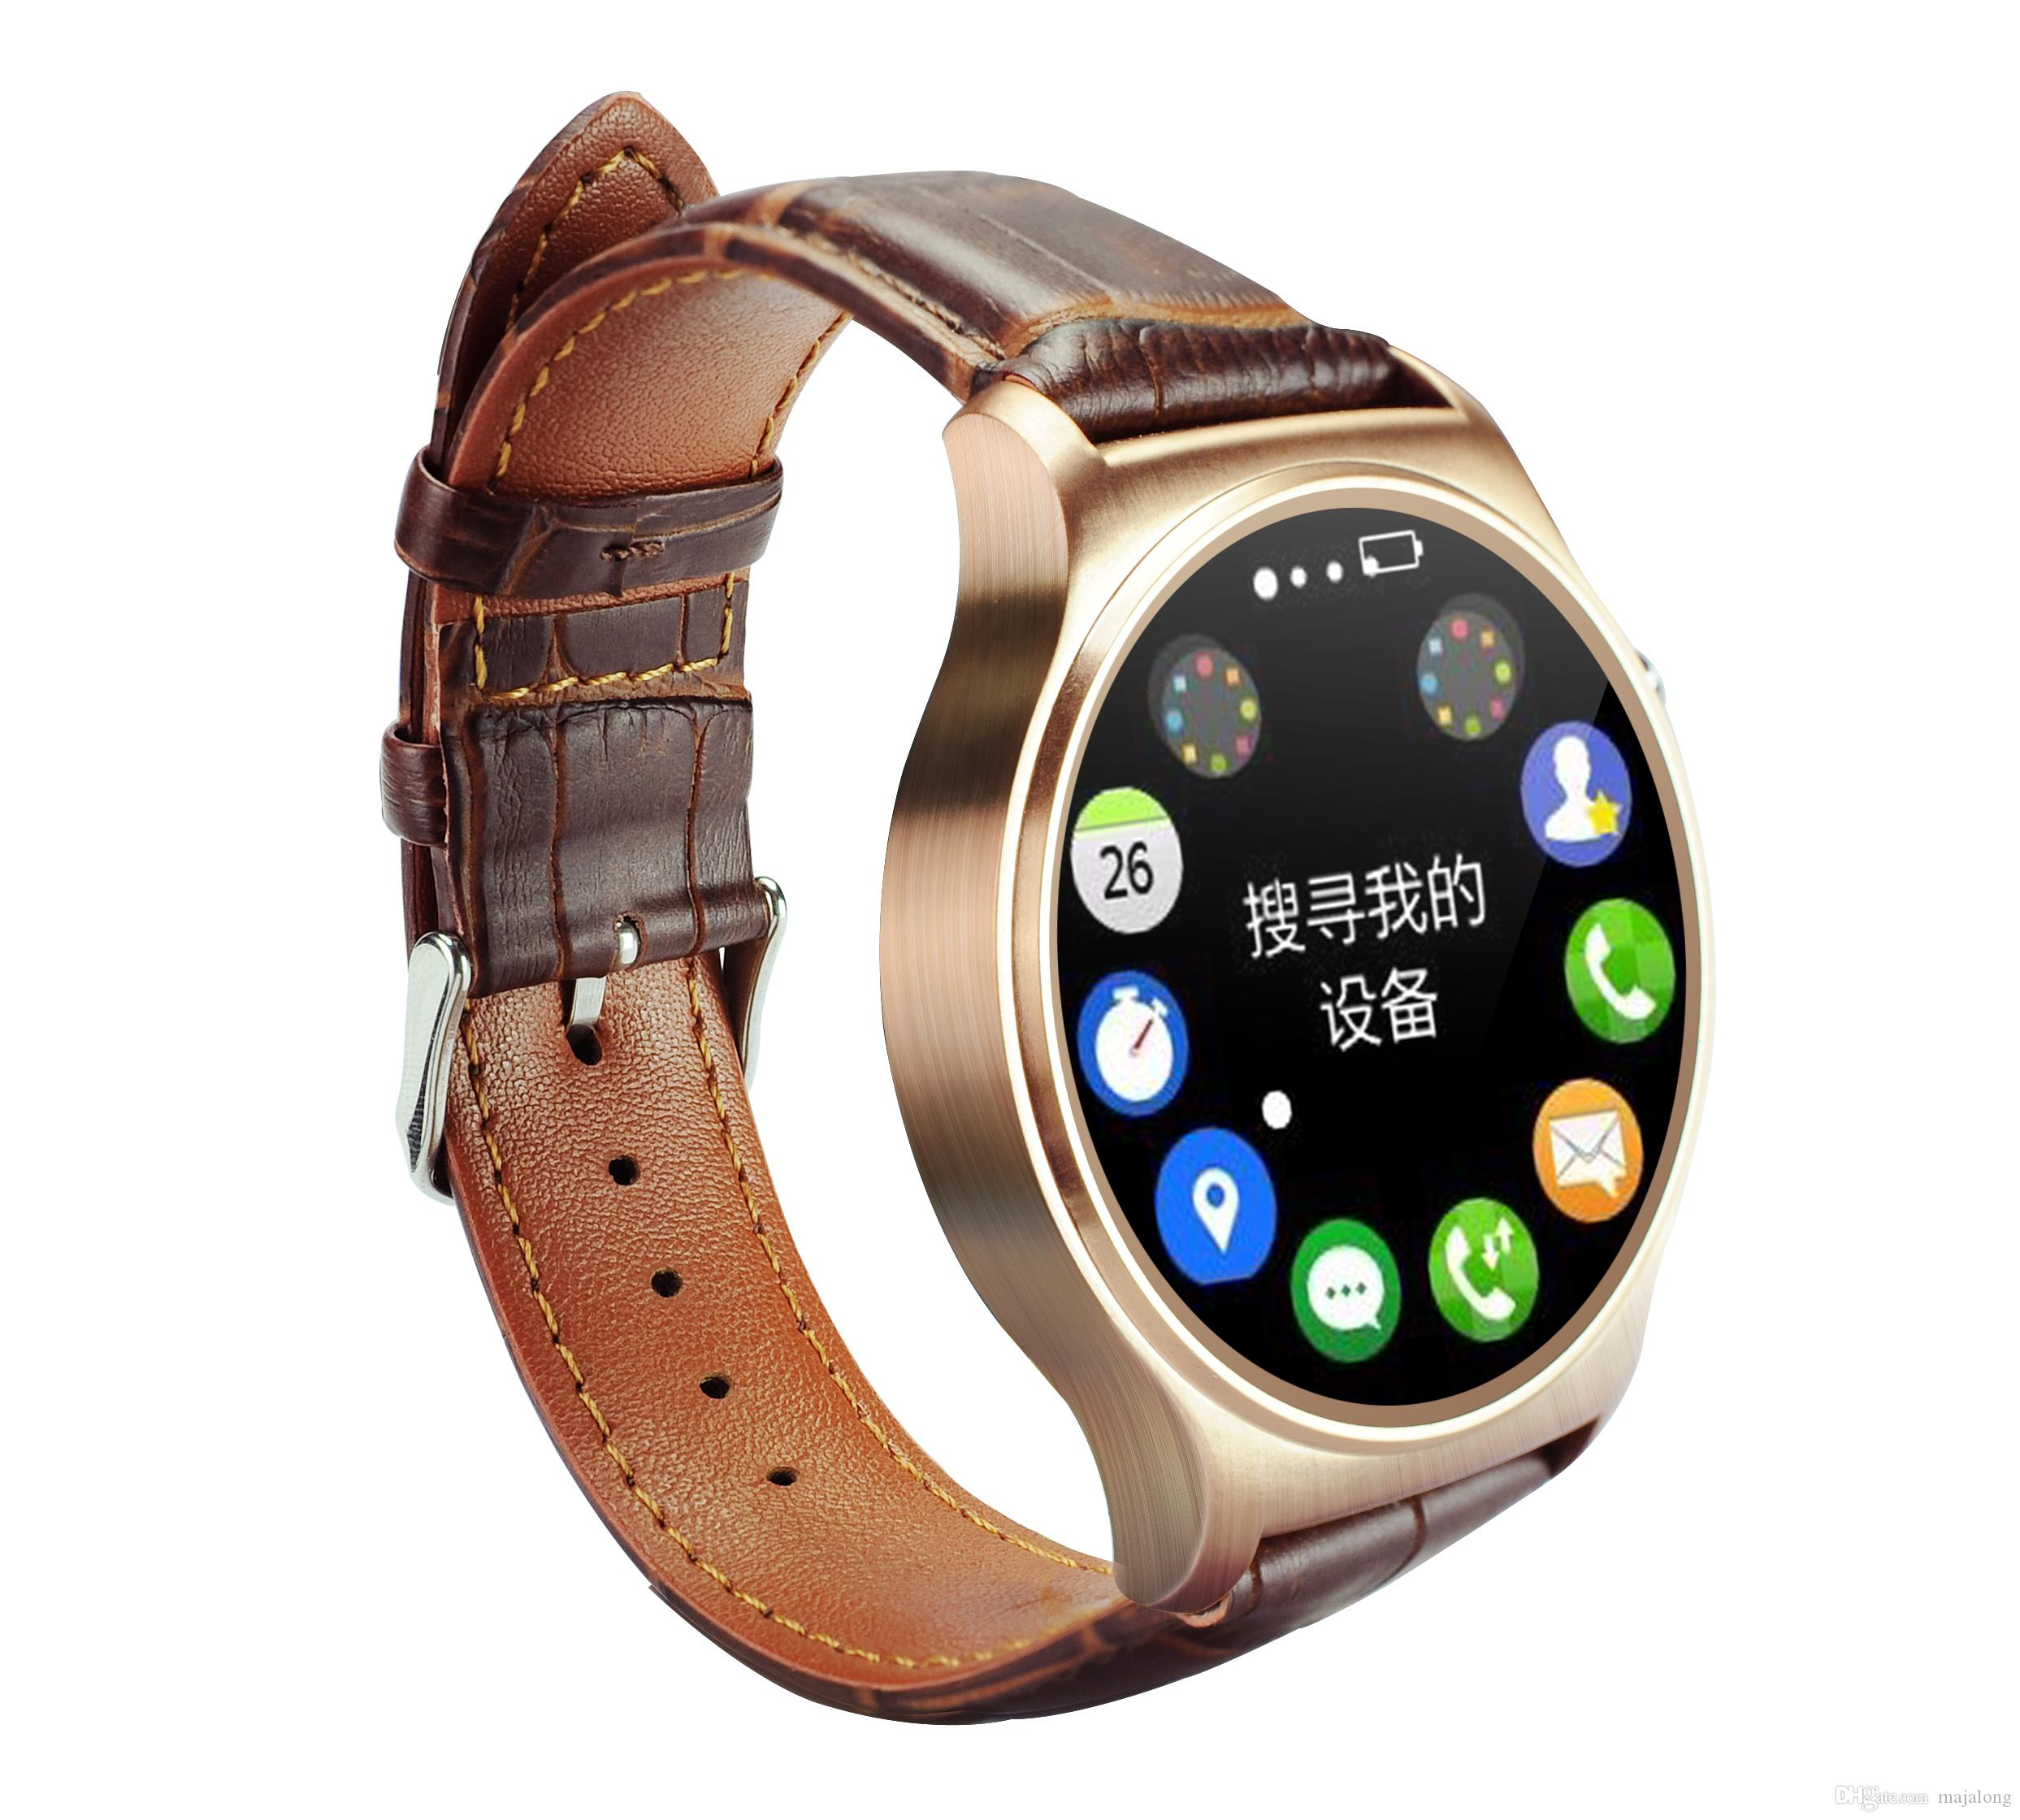 smart smartwatch seiko wristwatch real that shipping similar powerwatch to is back actual way thing world power though analog starts powered on utilized heat one the in watches body its principle usage thermico